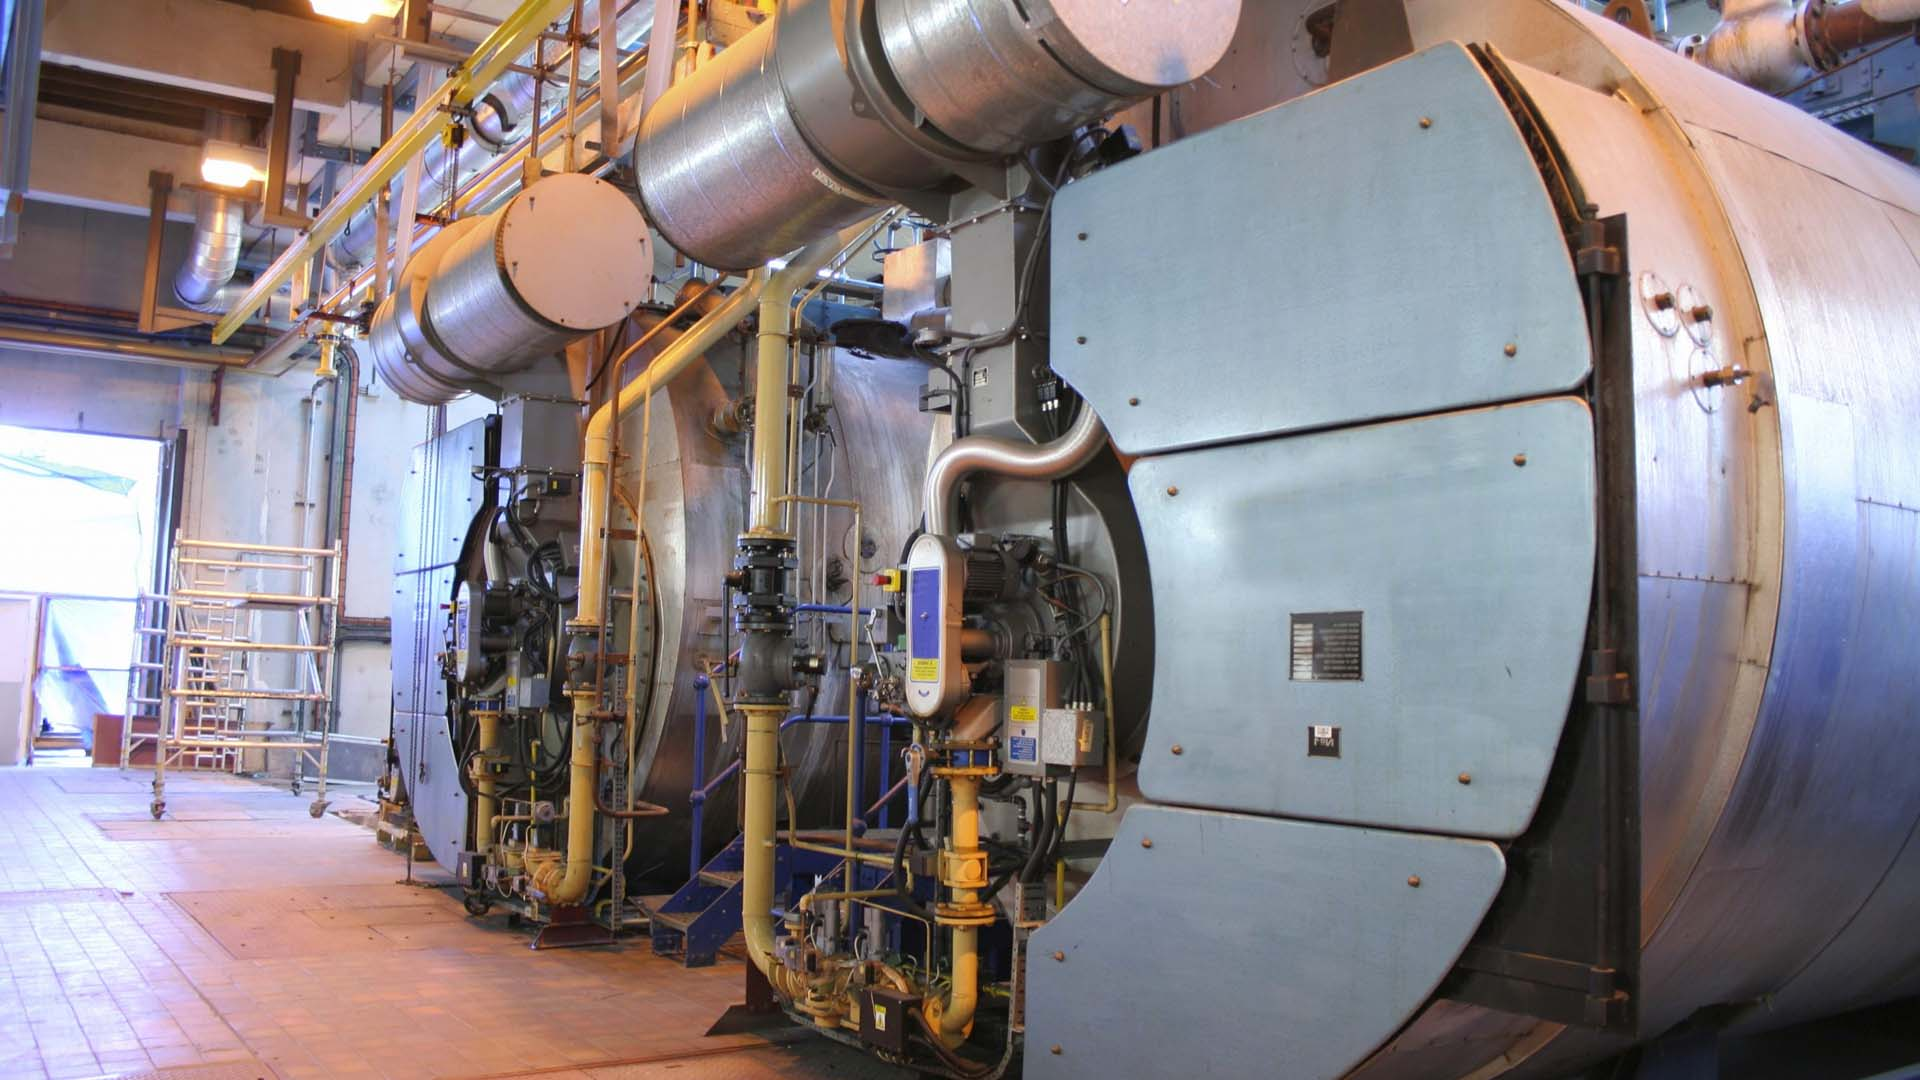 Steam boiler at an industrial factory